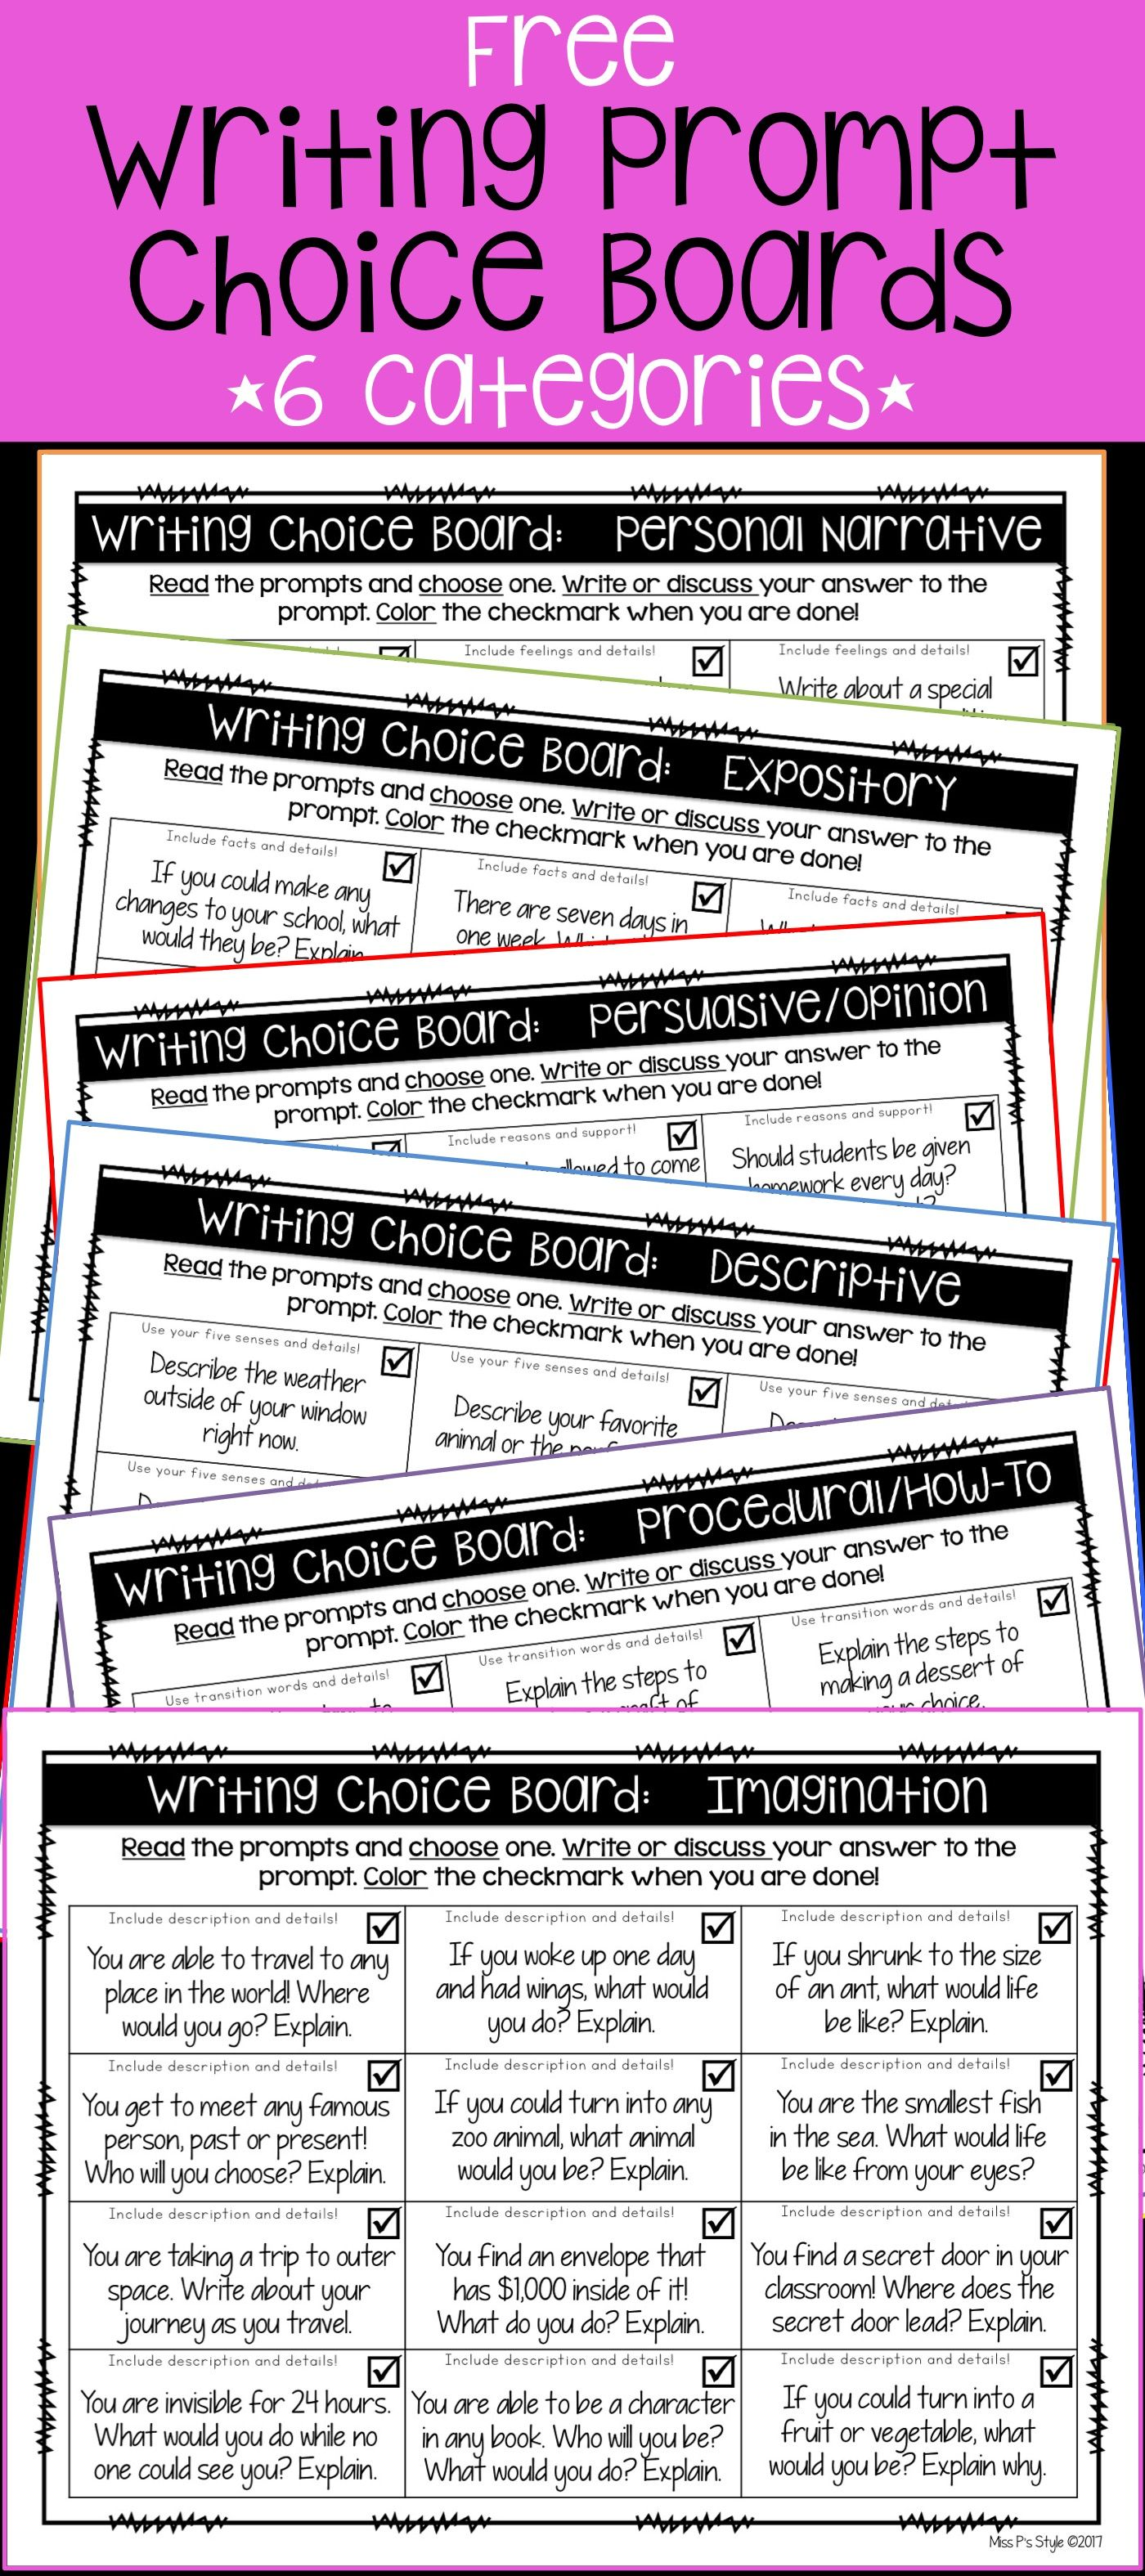 6 Free Writing Prompt Choice Boards Free Writing Prompts Writing Lessons Narrative Writing [ 3150 x 1400 Pixel ]